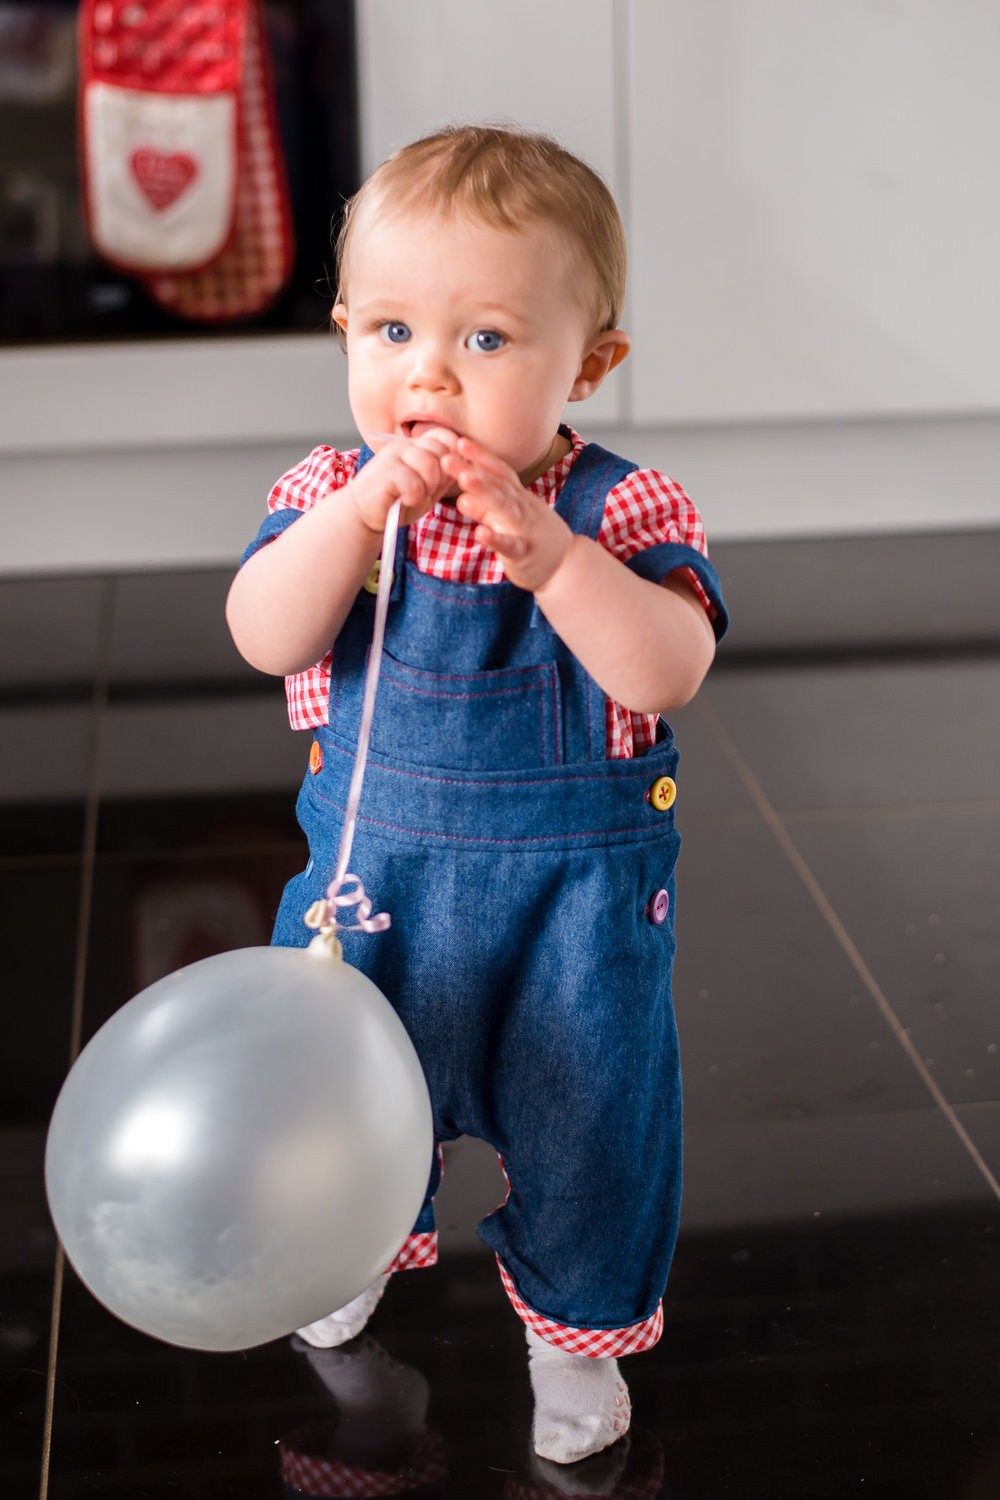 Balloon and dungarees in kitchen | Children's Photography